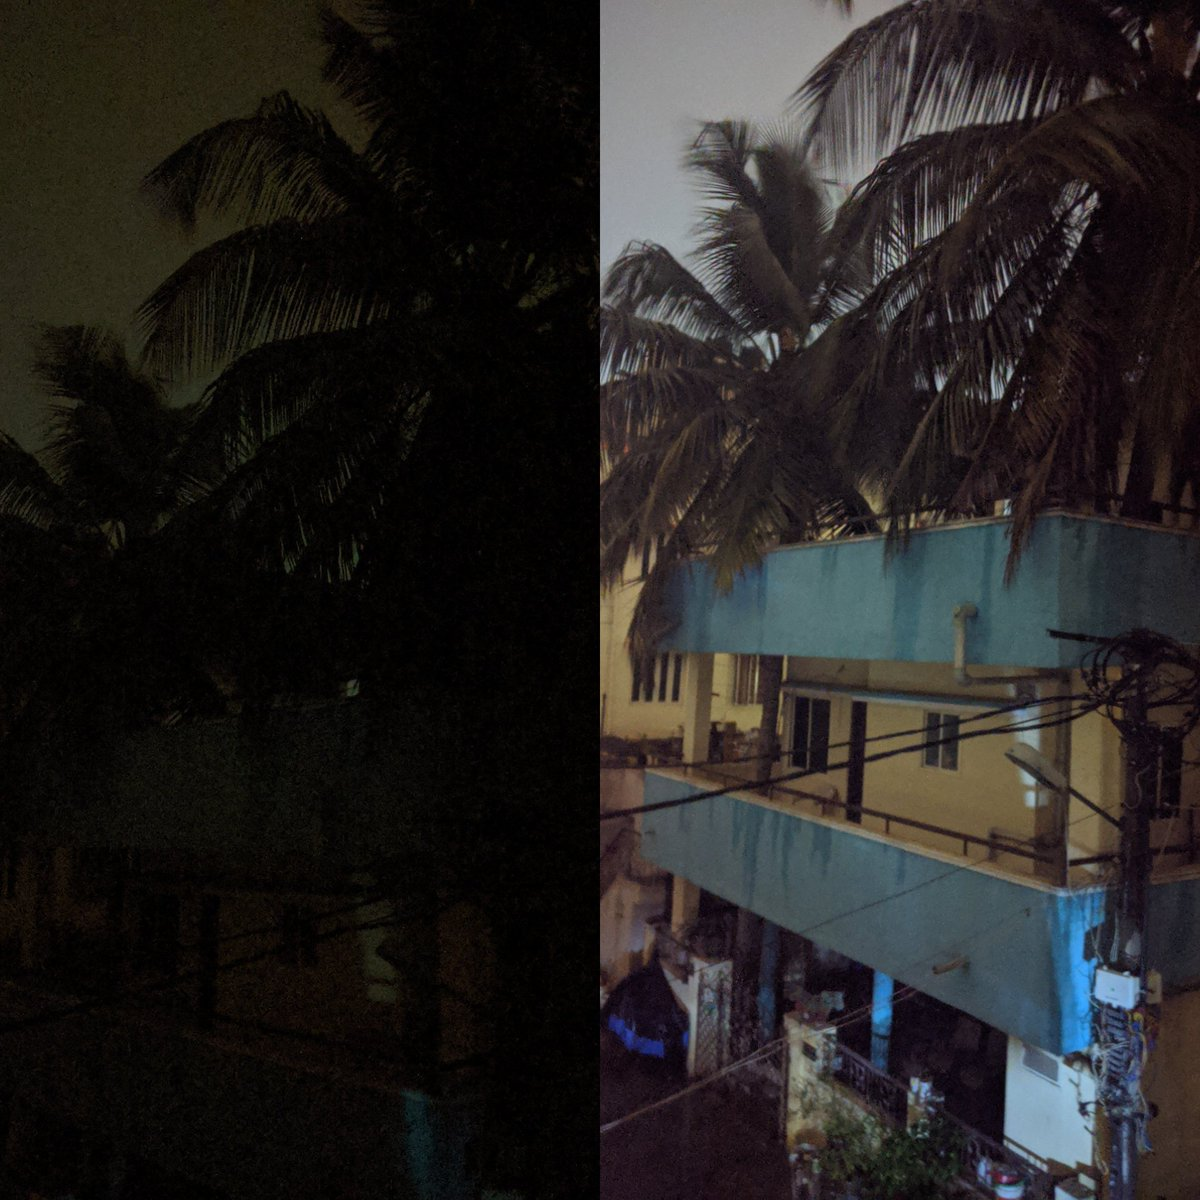 Without and with #pixelNightSight WOW 🤯 Both pics have been taken @  8.43pm 🌠 #Google #Pixel2